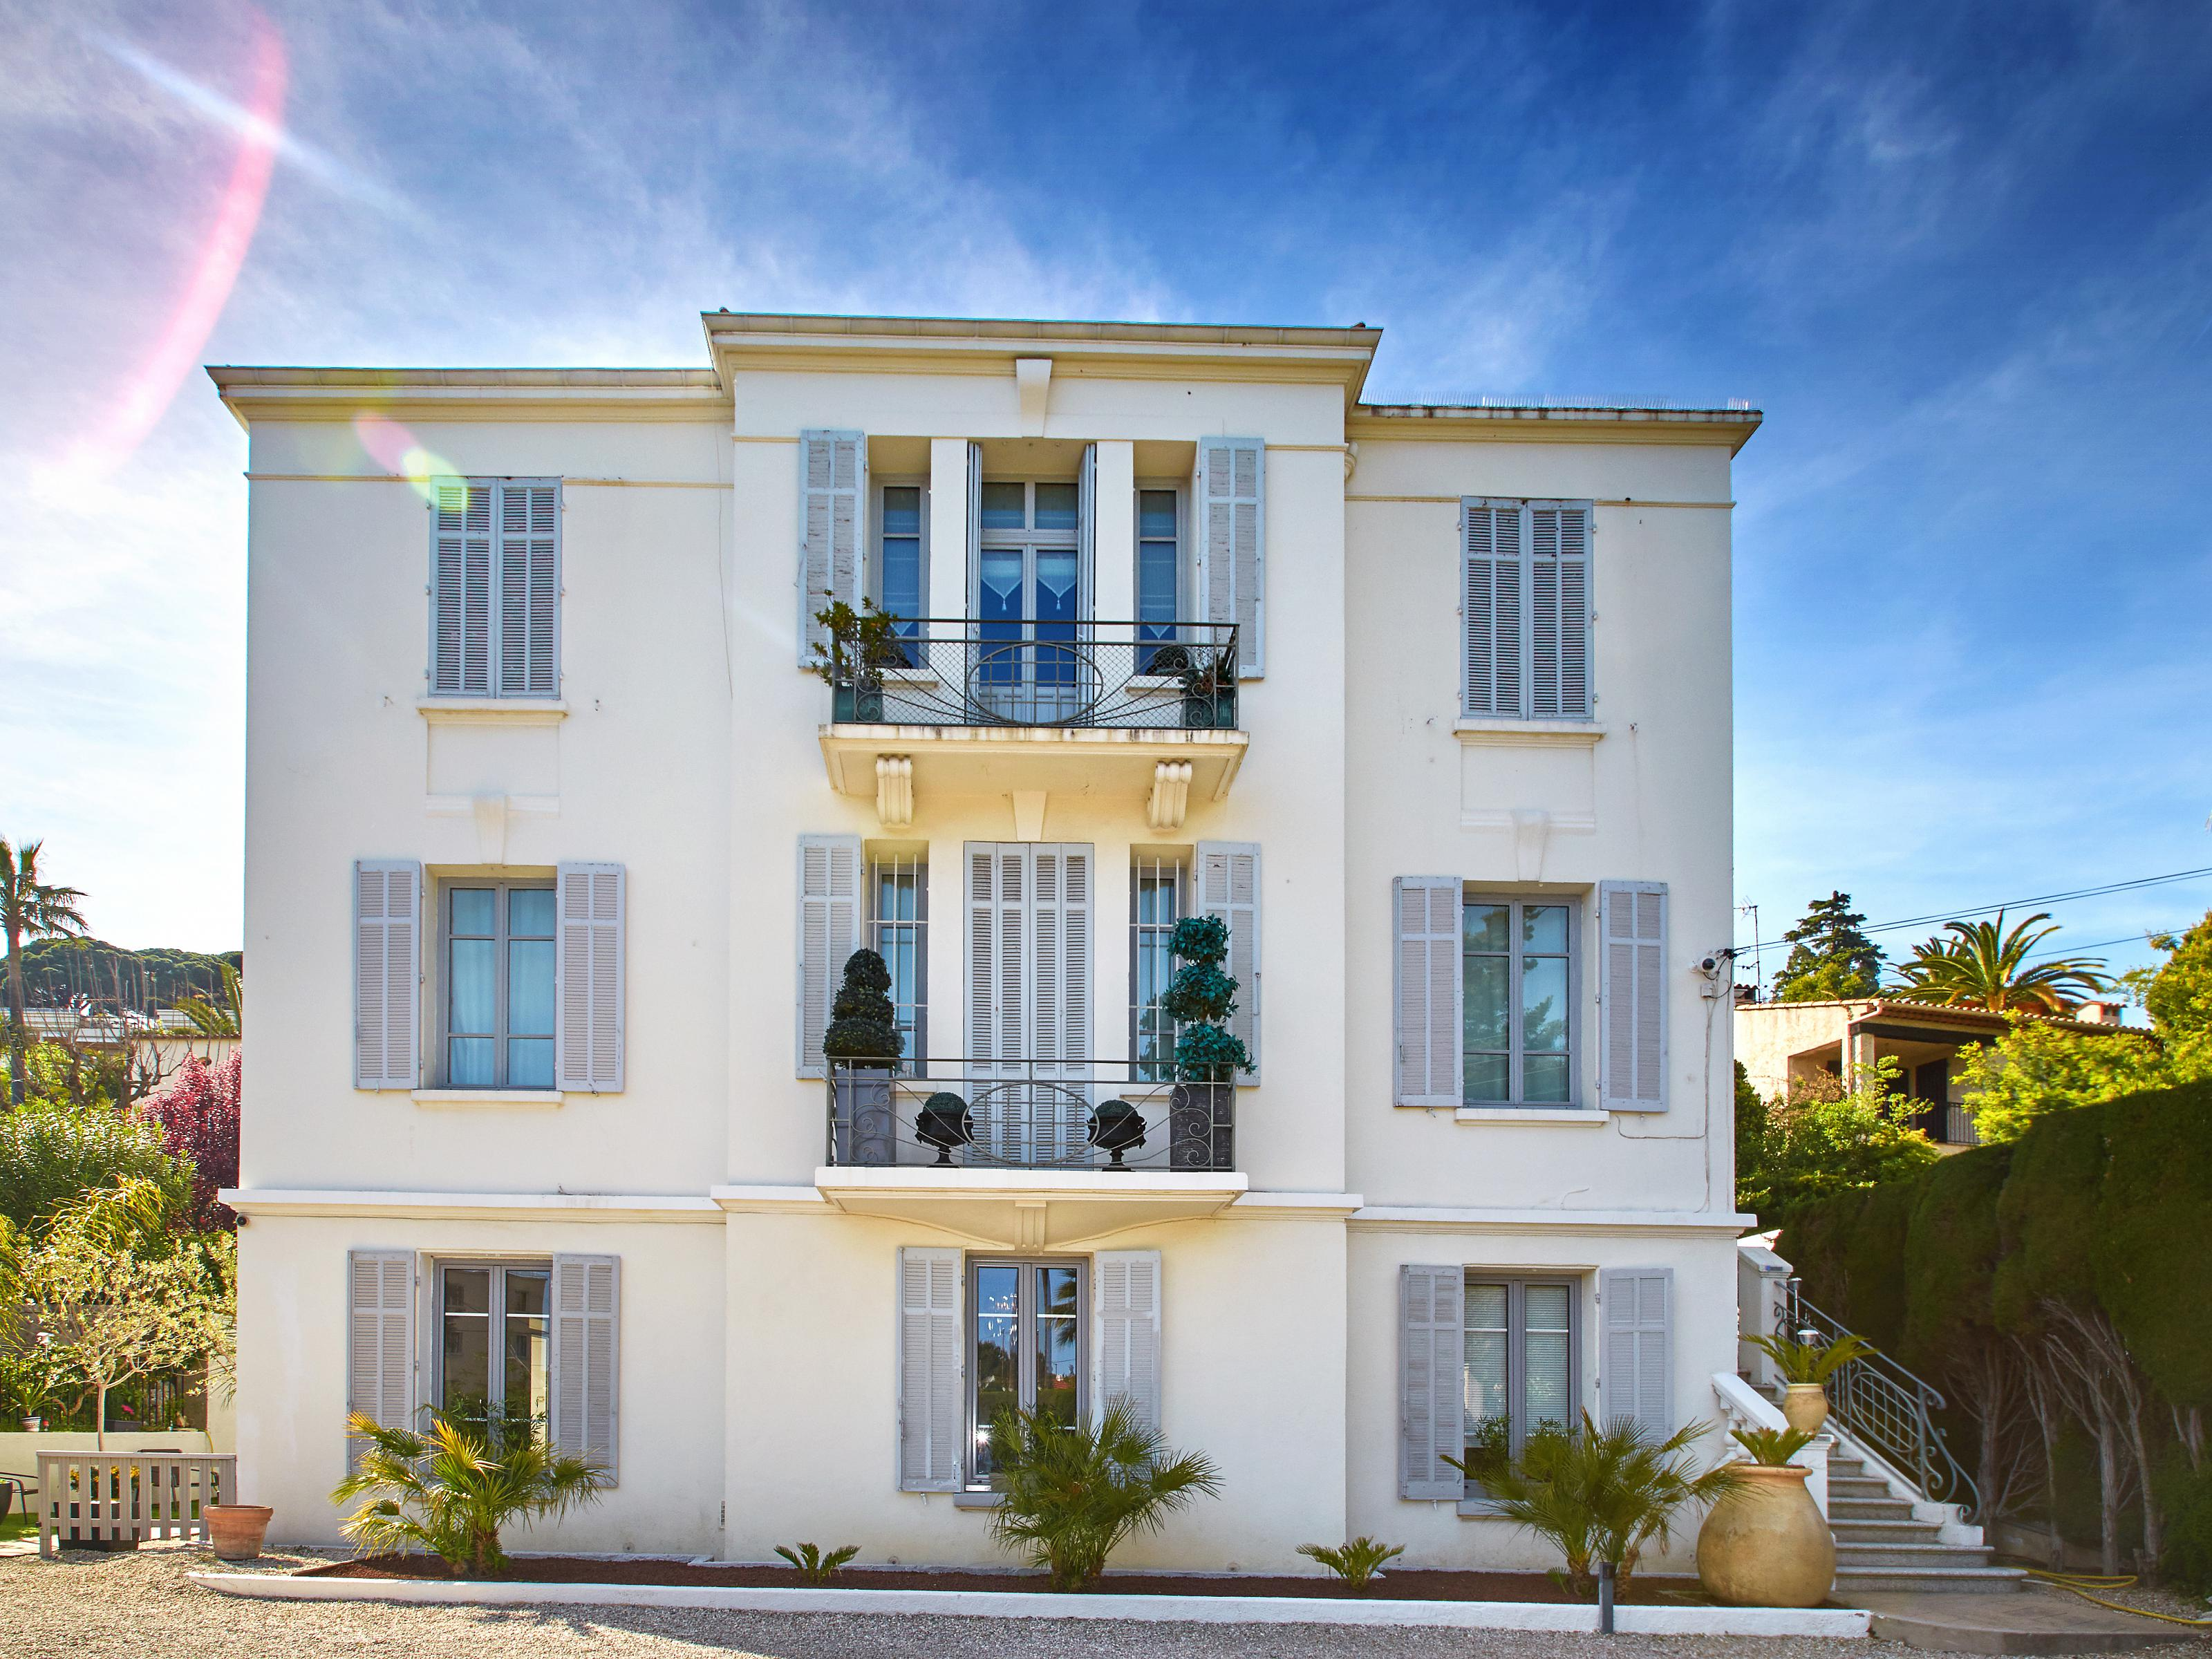 Apartamento para Venda às Apartment in Cannes 3 min walk to beach Cannes, Provença-Alpes-Costa Azul 06400 França